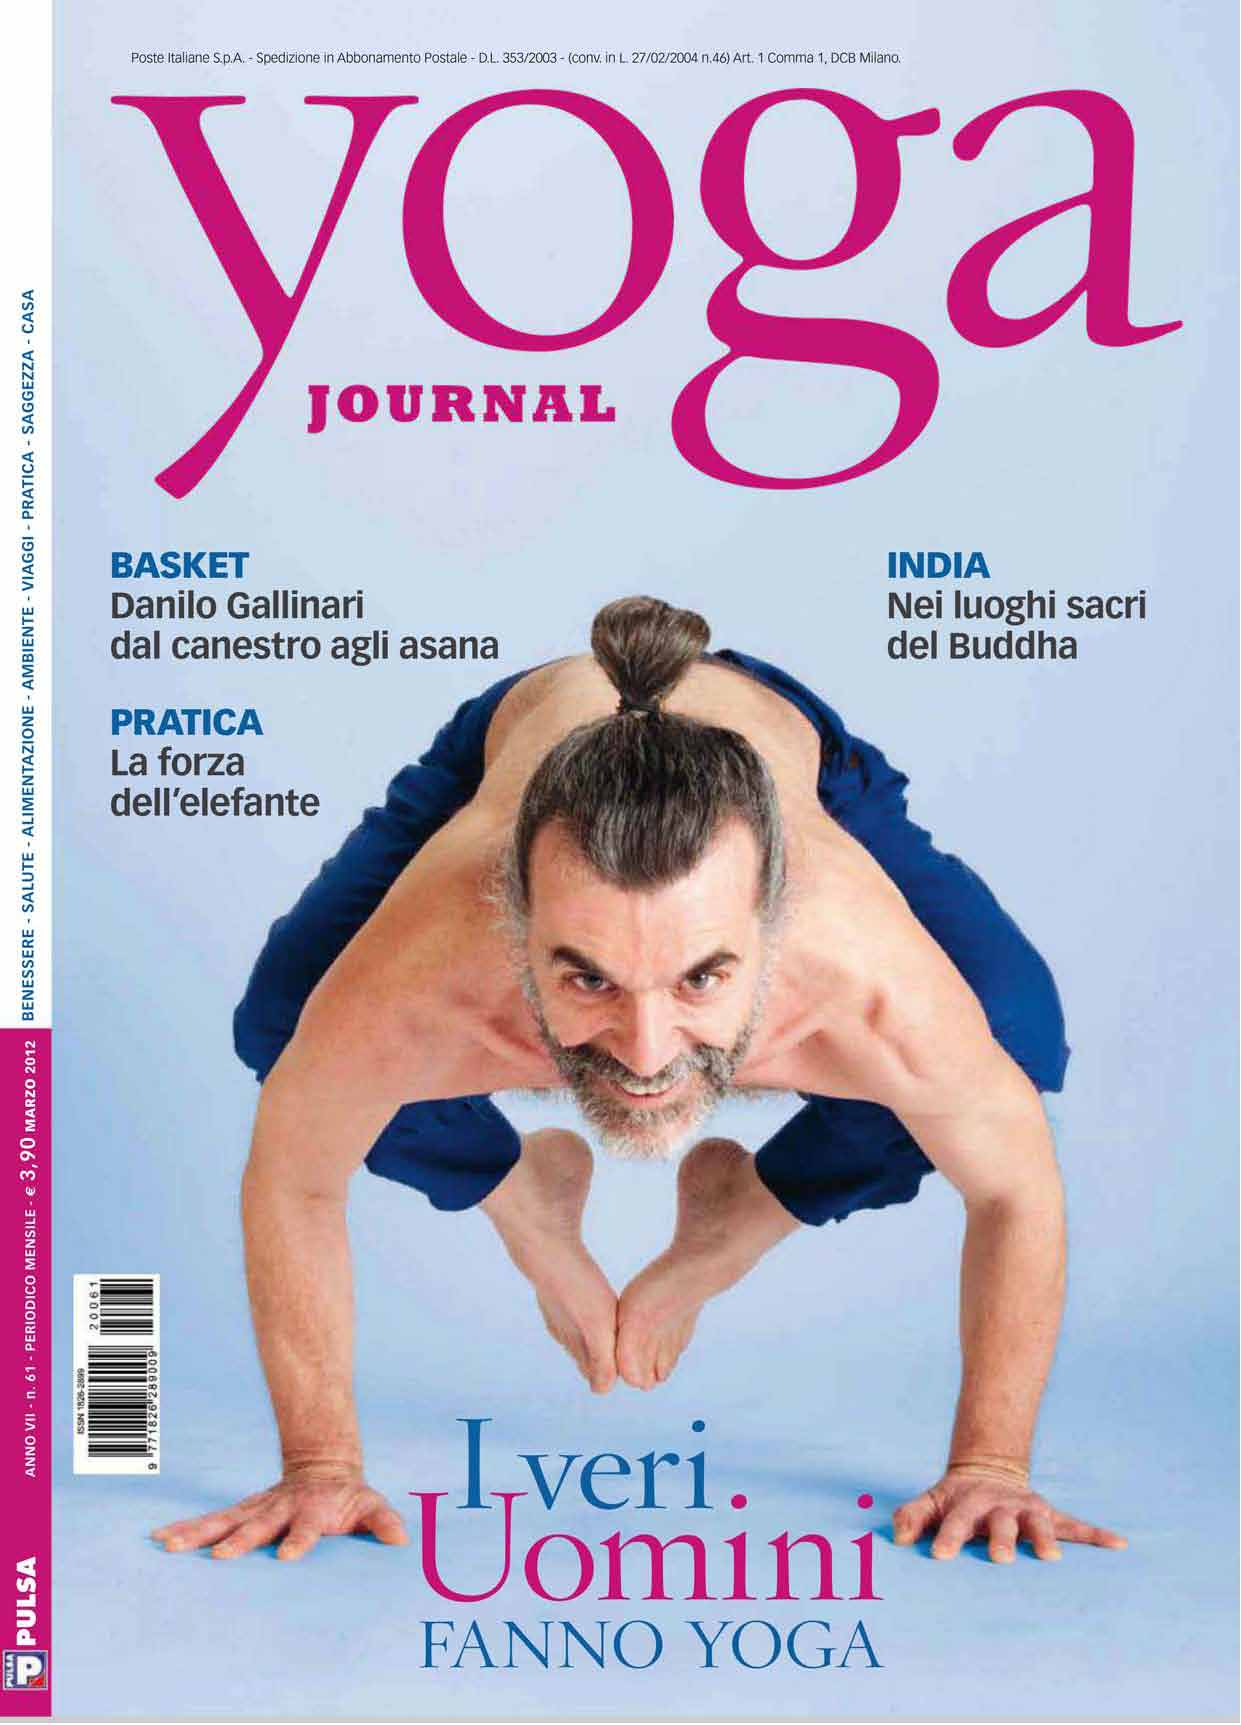 Yoga Journal Italia Marzo 2012 free download